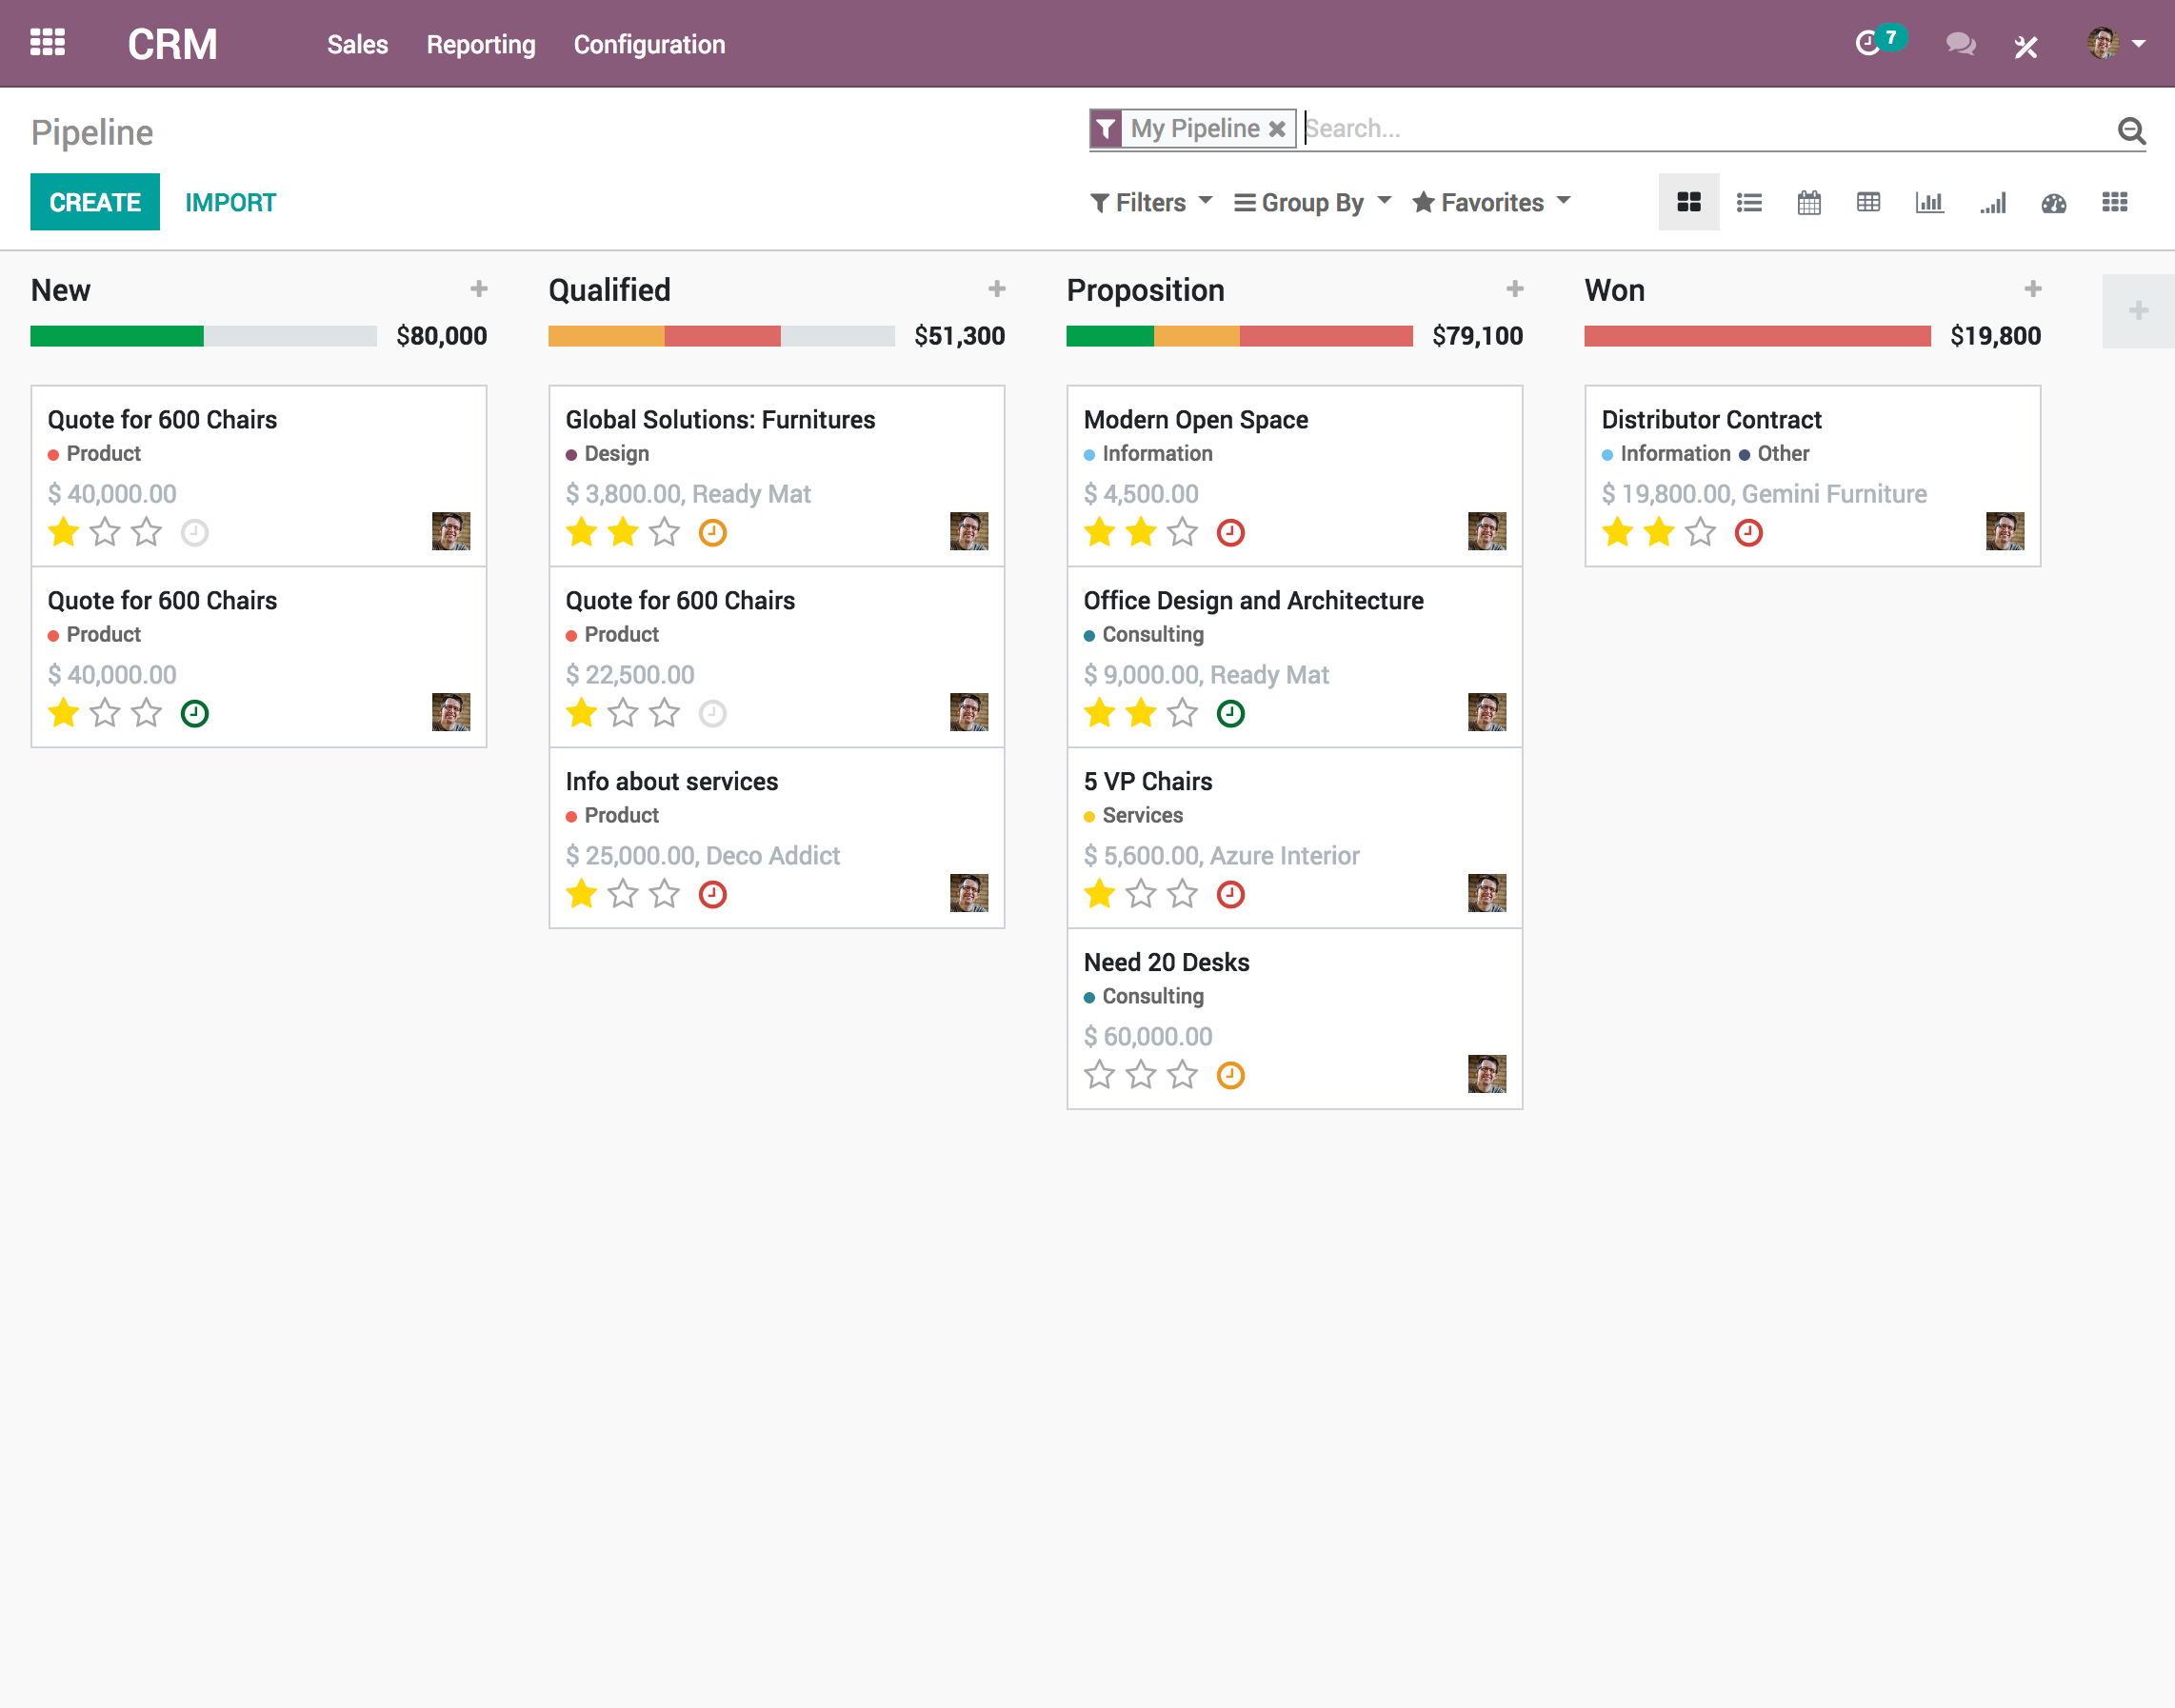 Odoo CRM - Pipeline View